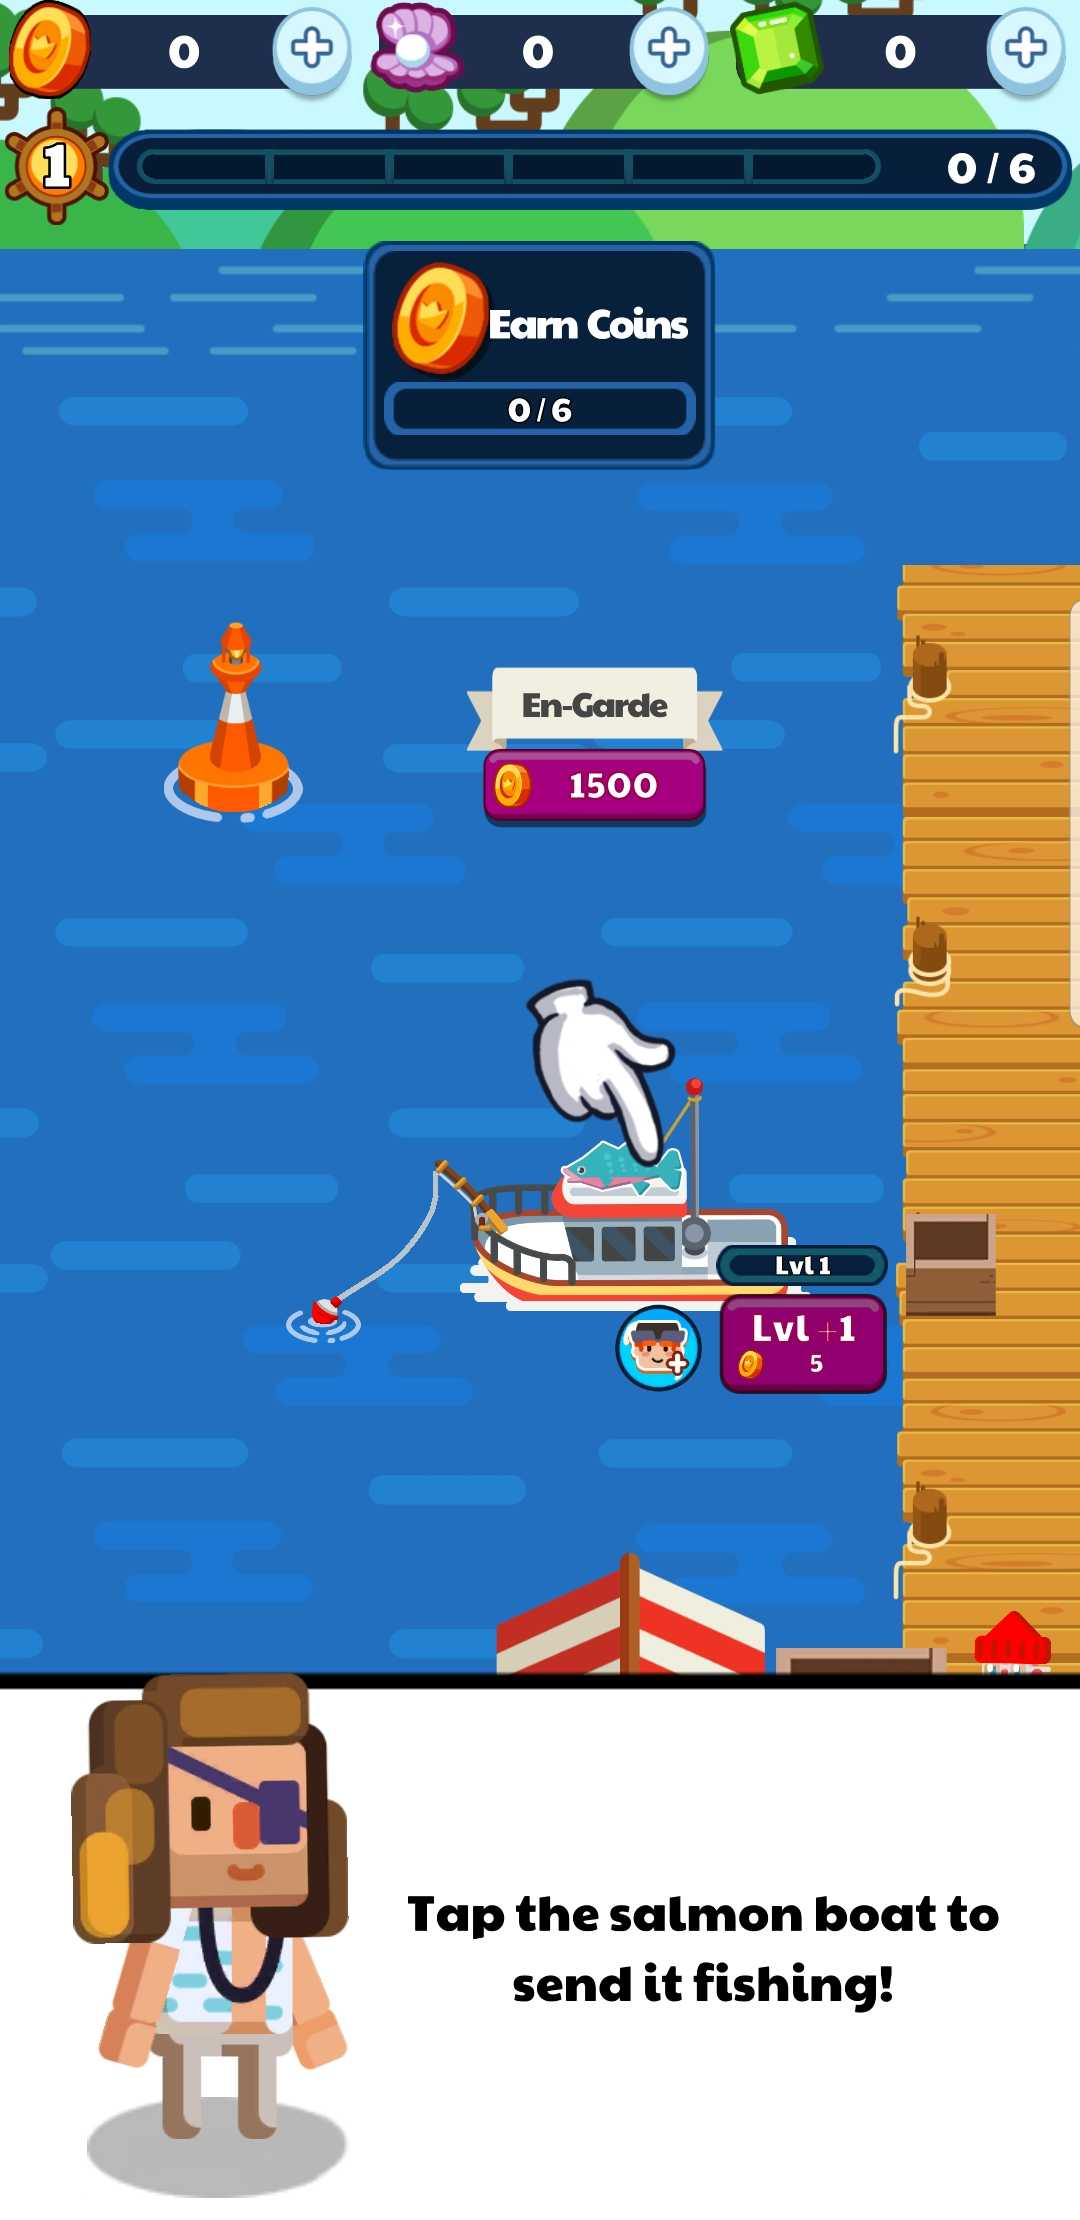 Screenshot_20191219-100841_Fishing_129.jpg